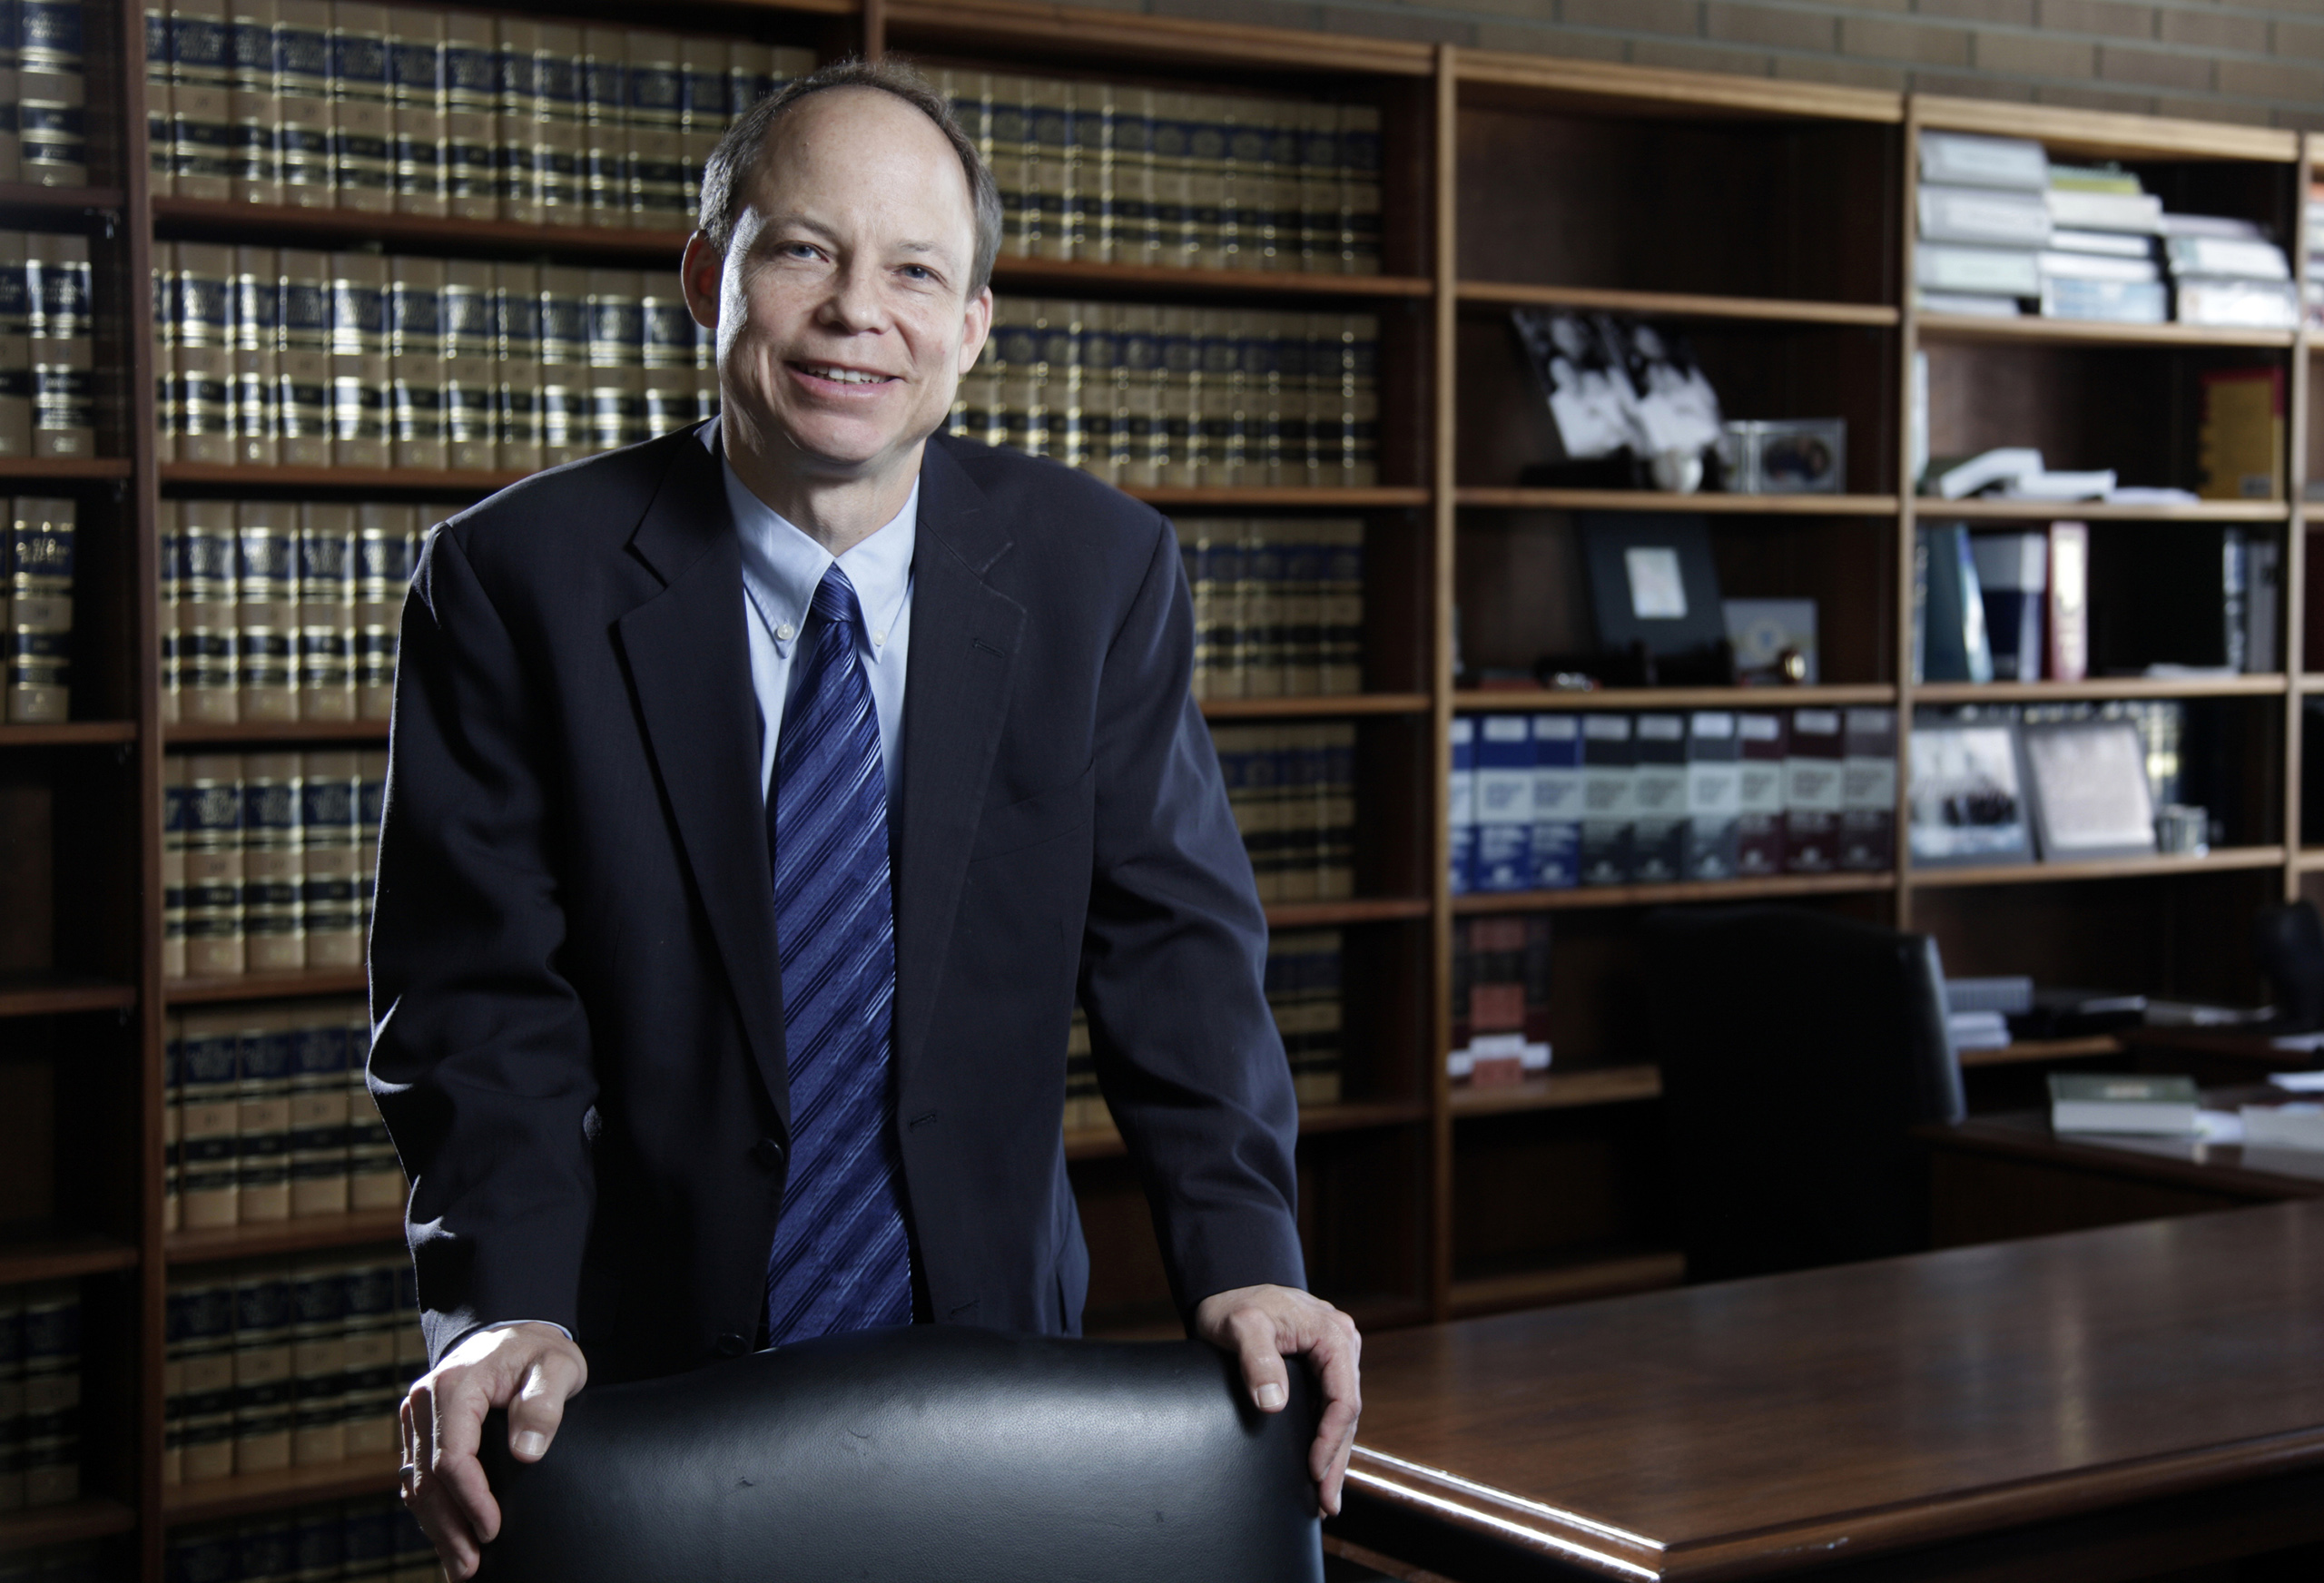 Santa Clara County Superior Court Judge Aaron Persky, June 27, 2011.